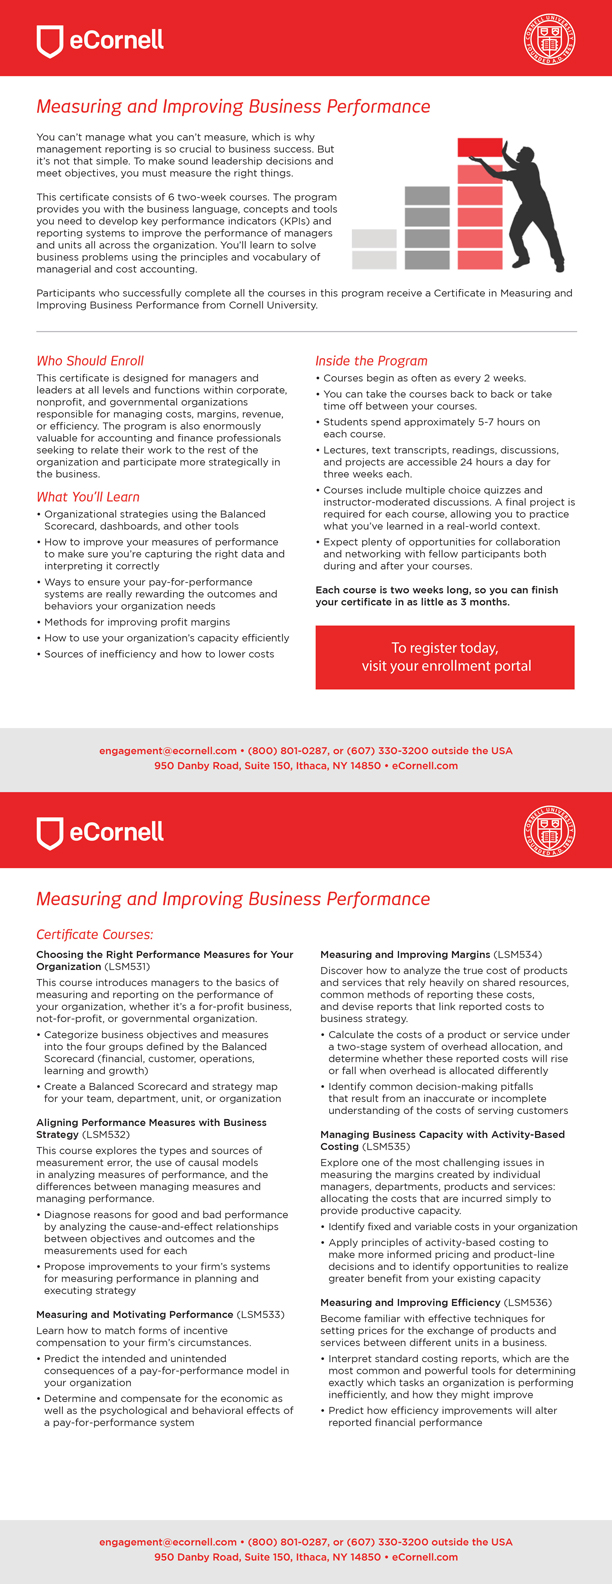 Measuring and Improving Business Performance Flyer for Corporations